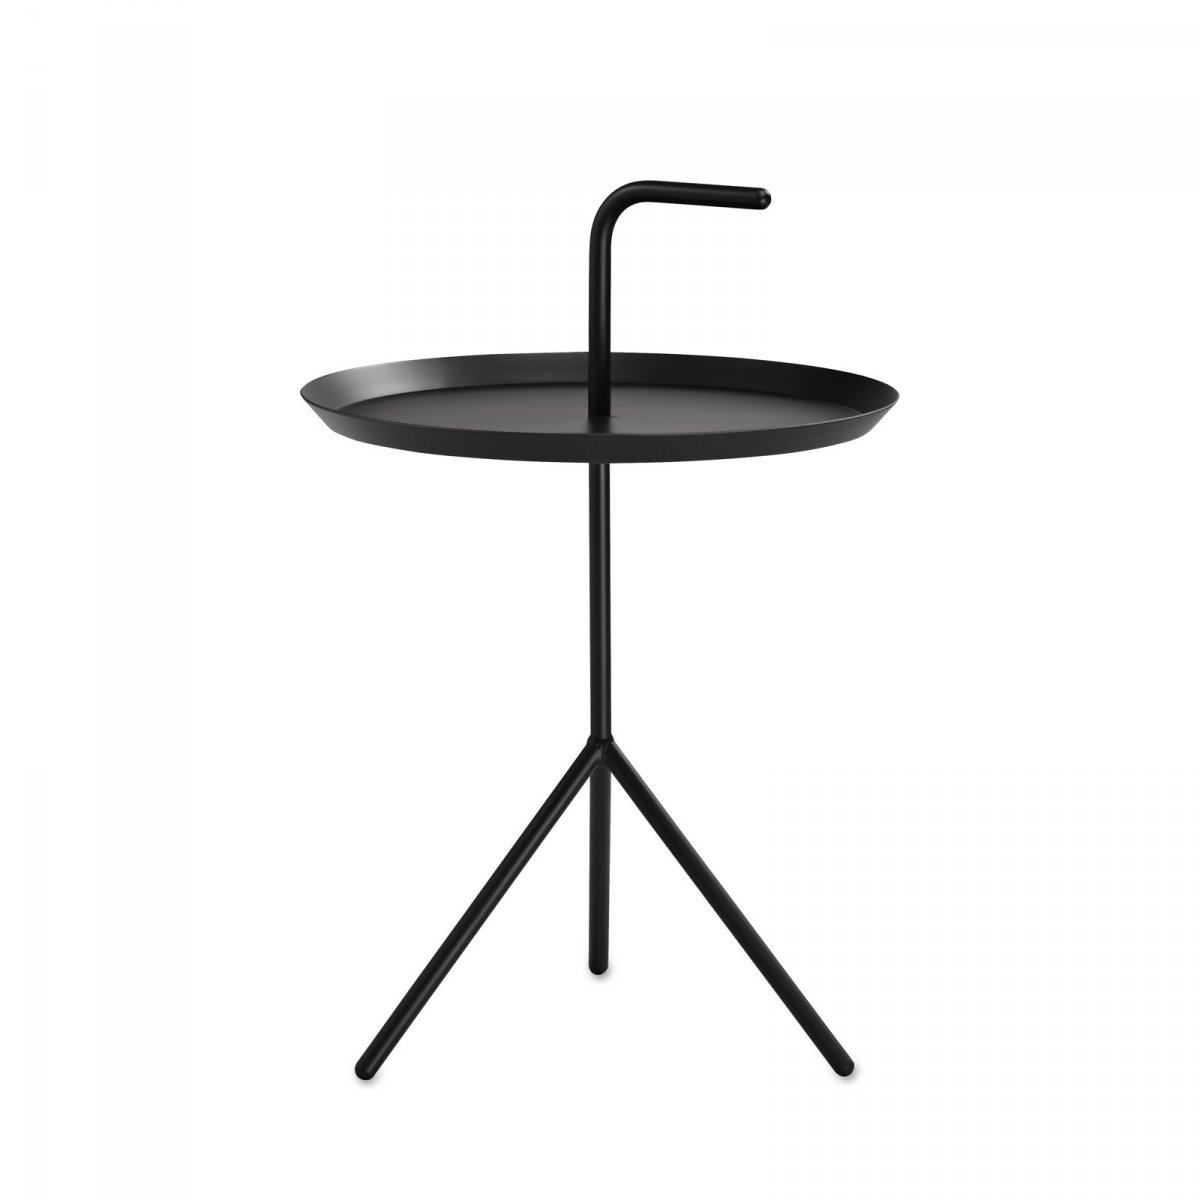 DLM side table, black.